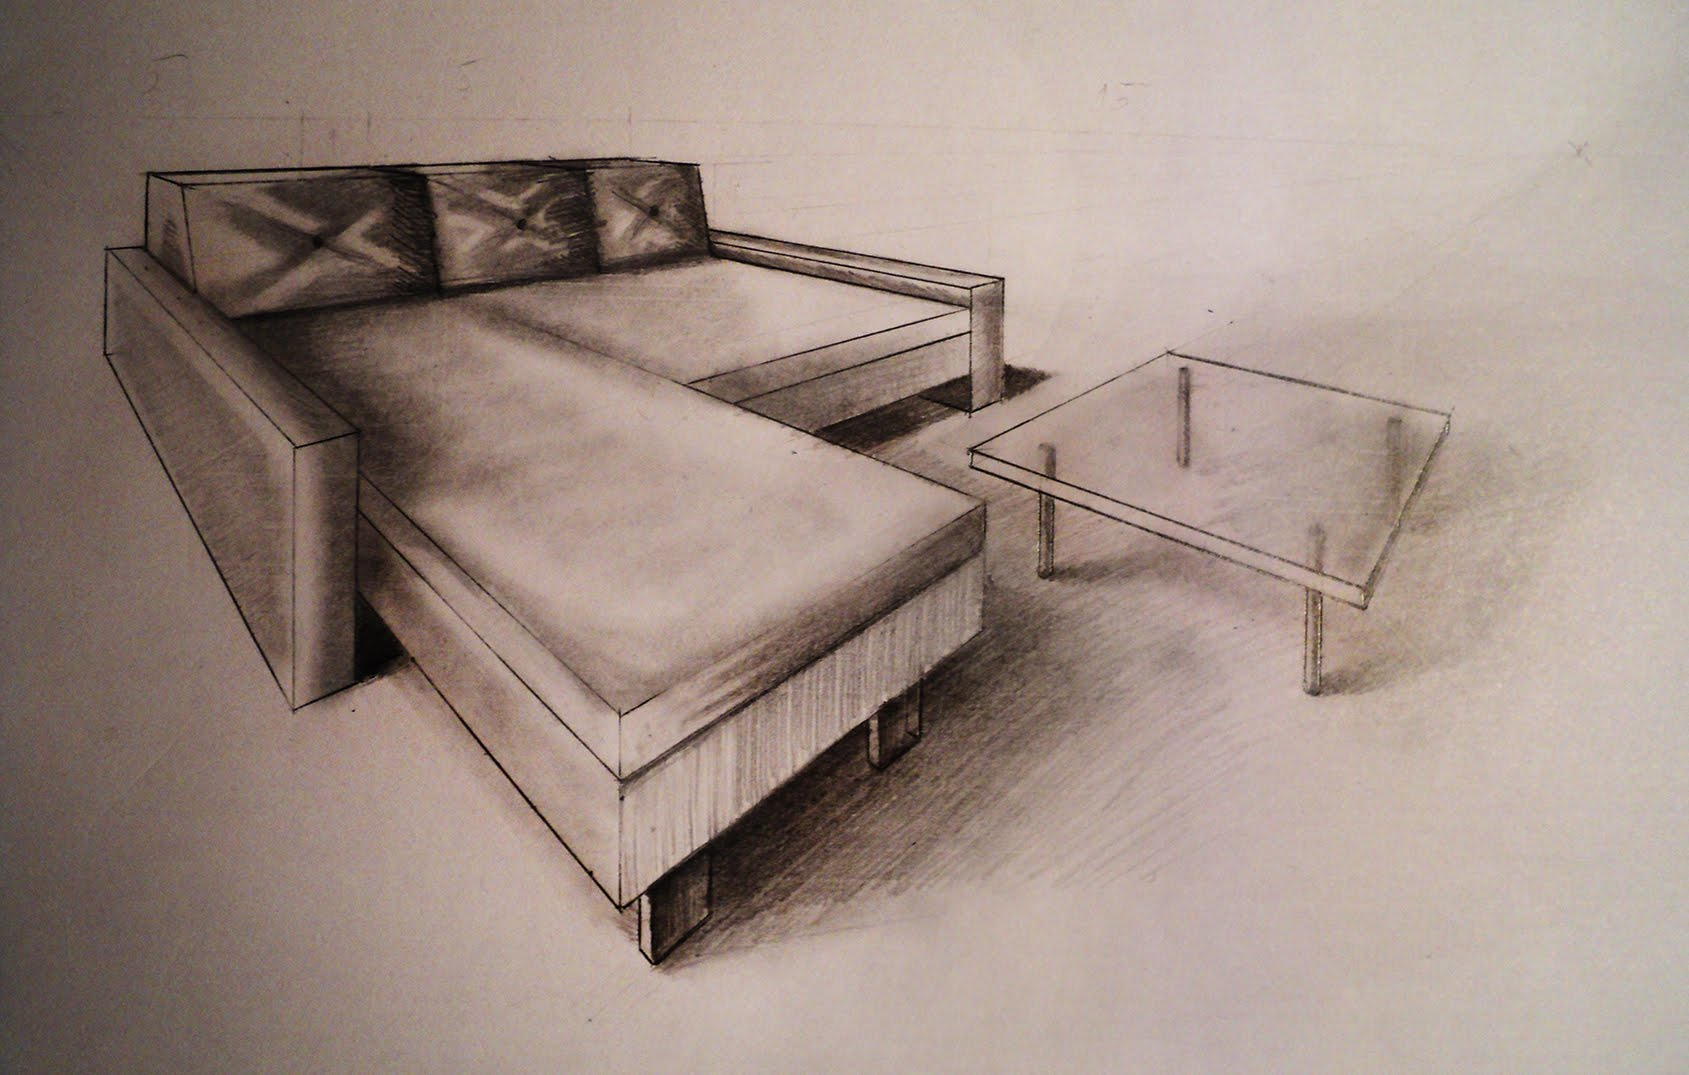 Drawn sofa architectural drawing Coffee to perspective YouTube Two